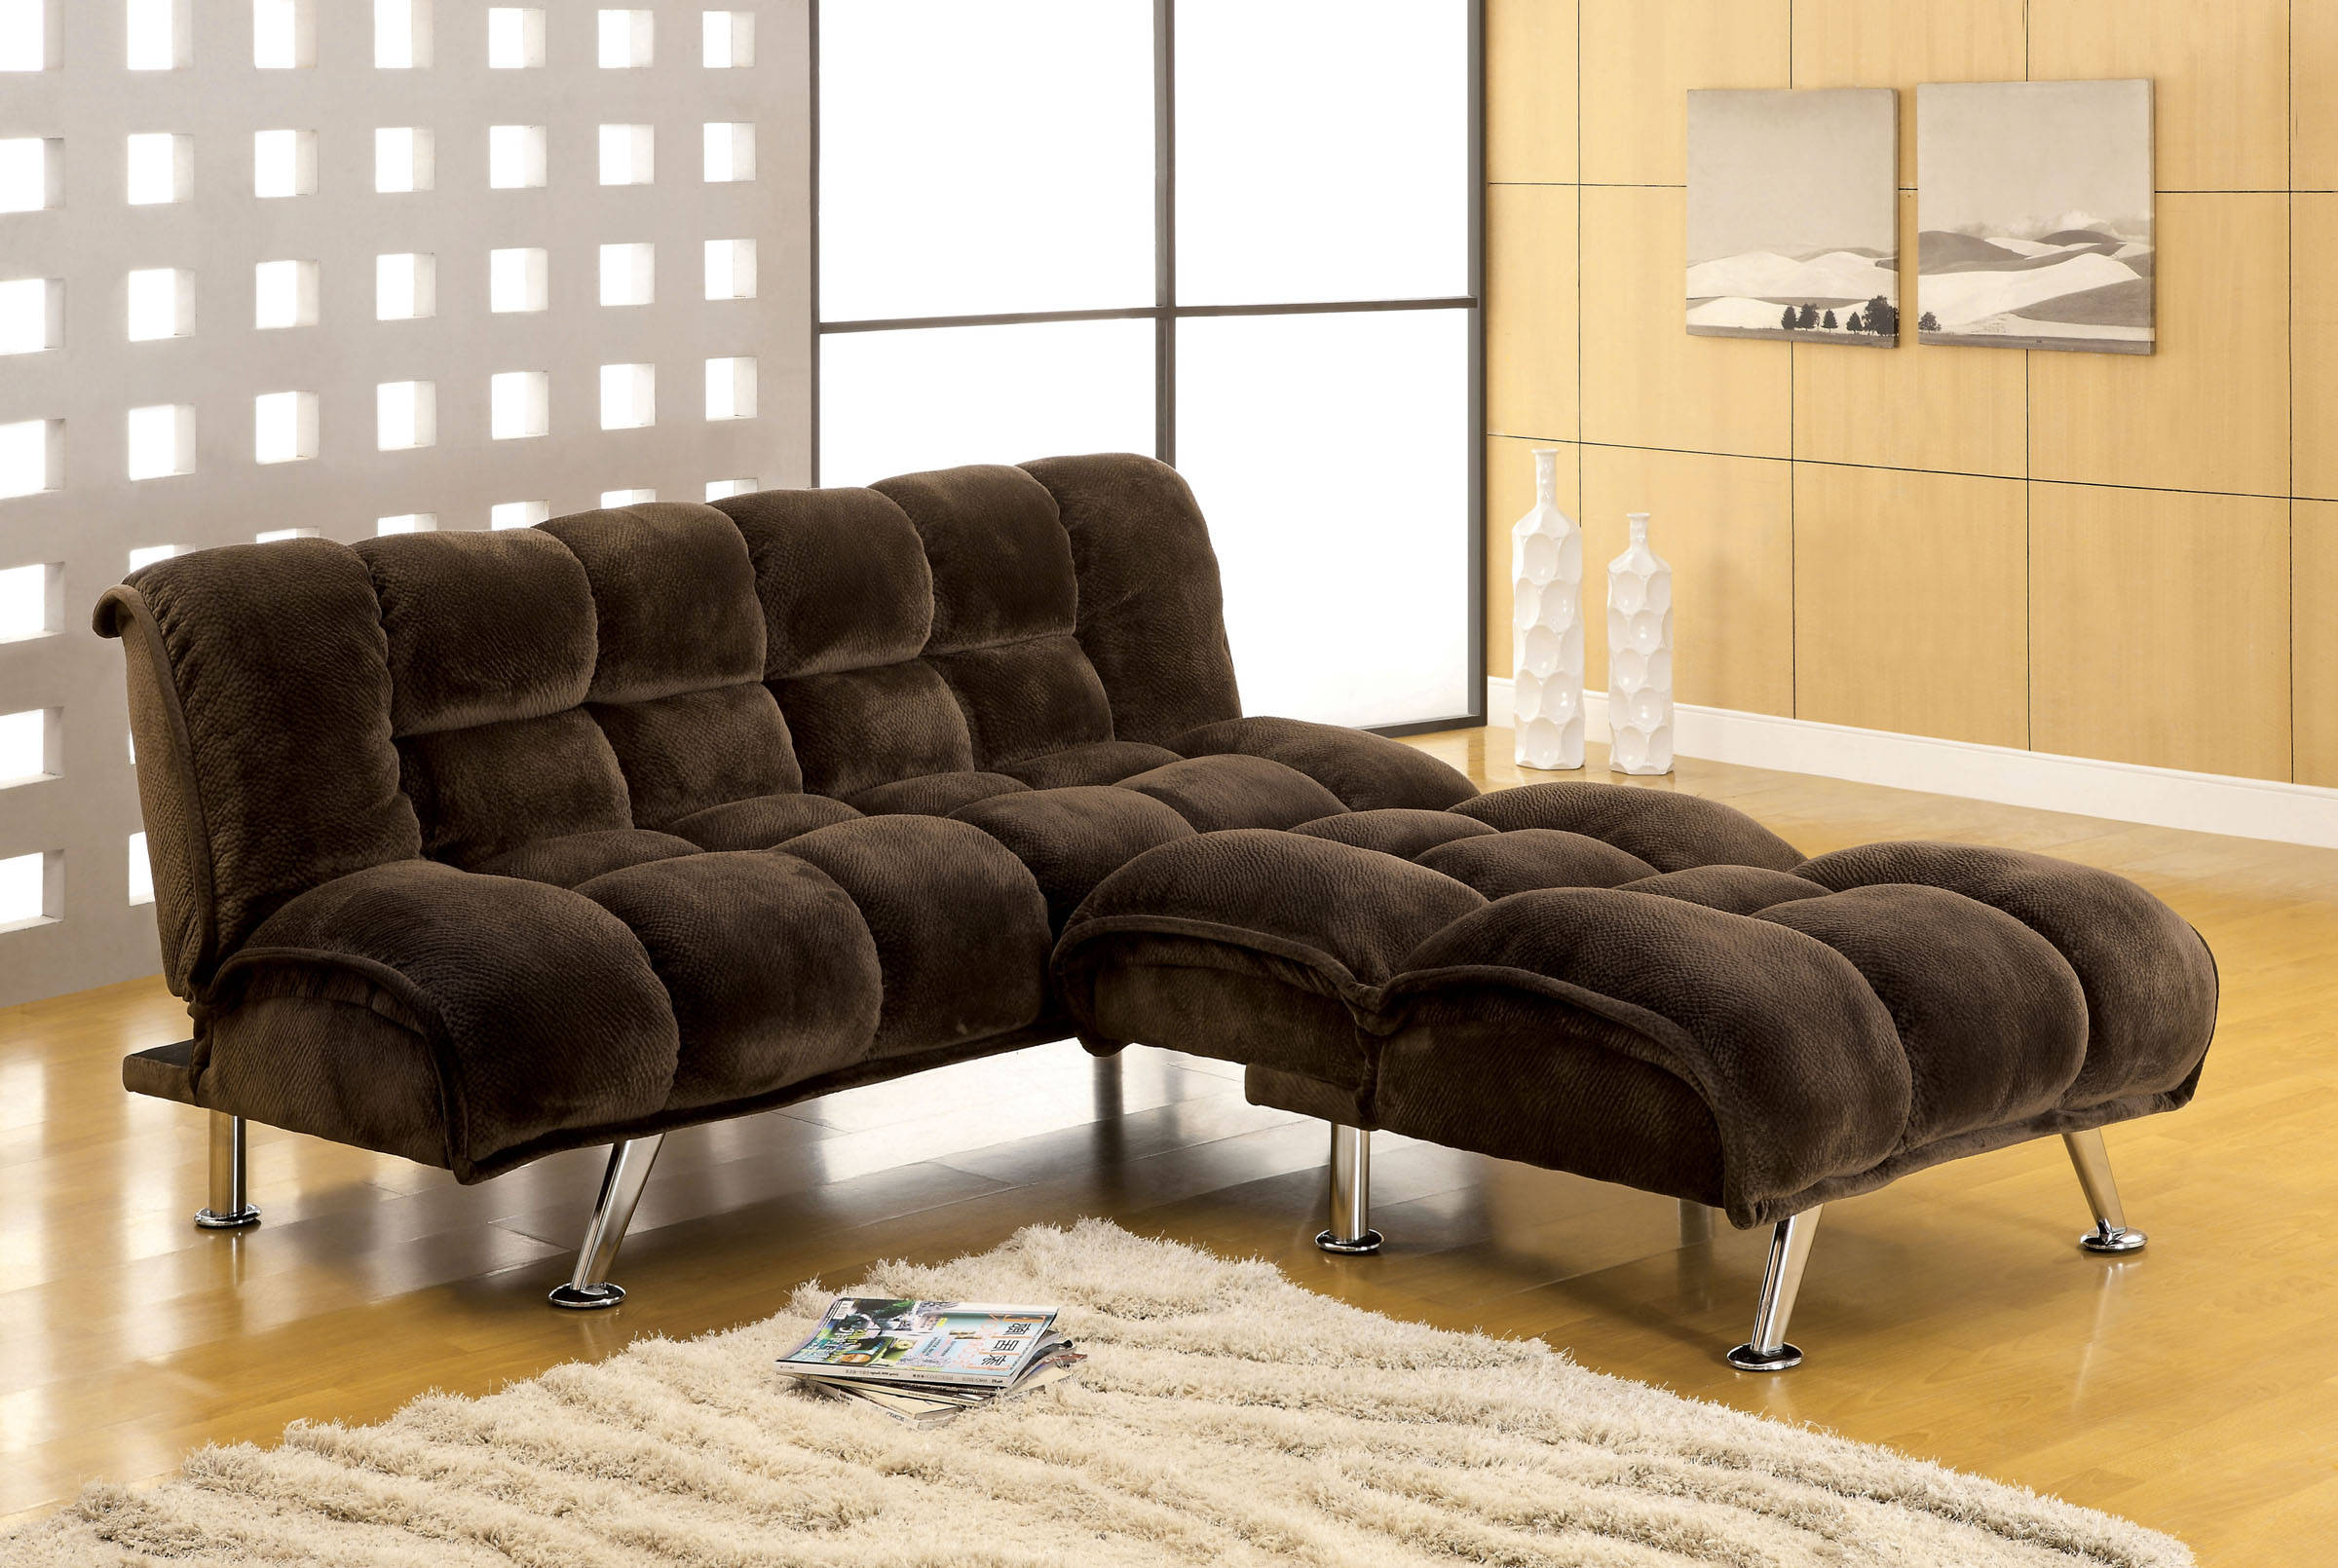 Furniture Of America Marbelle Dark Brown 2pc Living Room Set intended for Futon Living Room Set